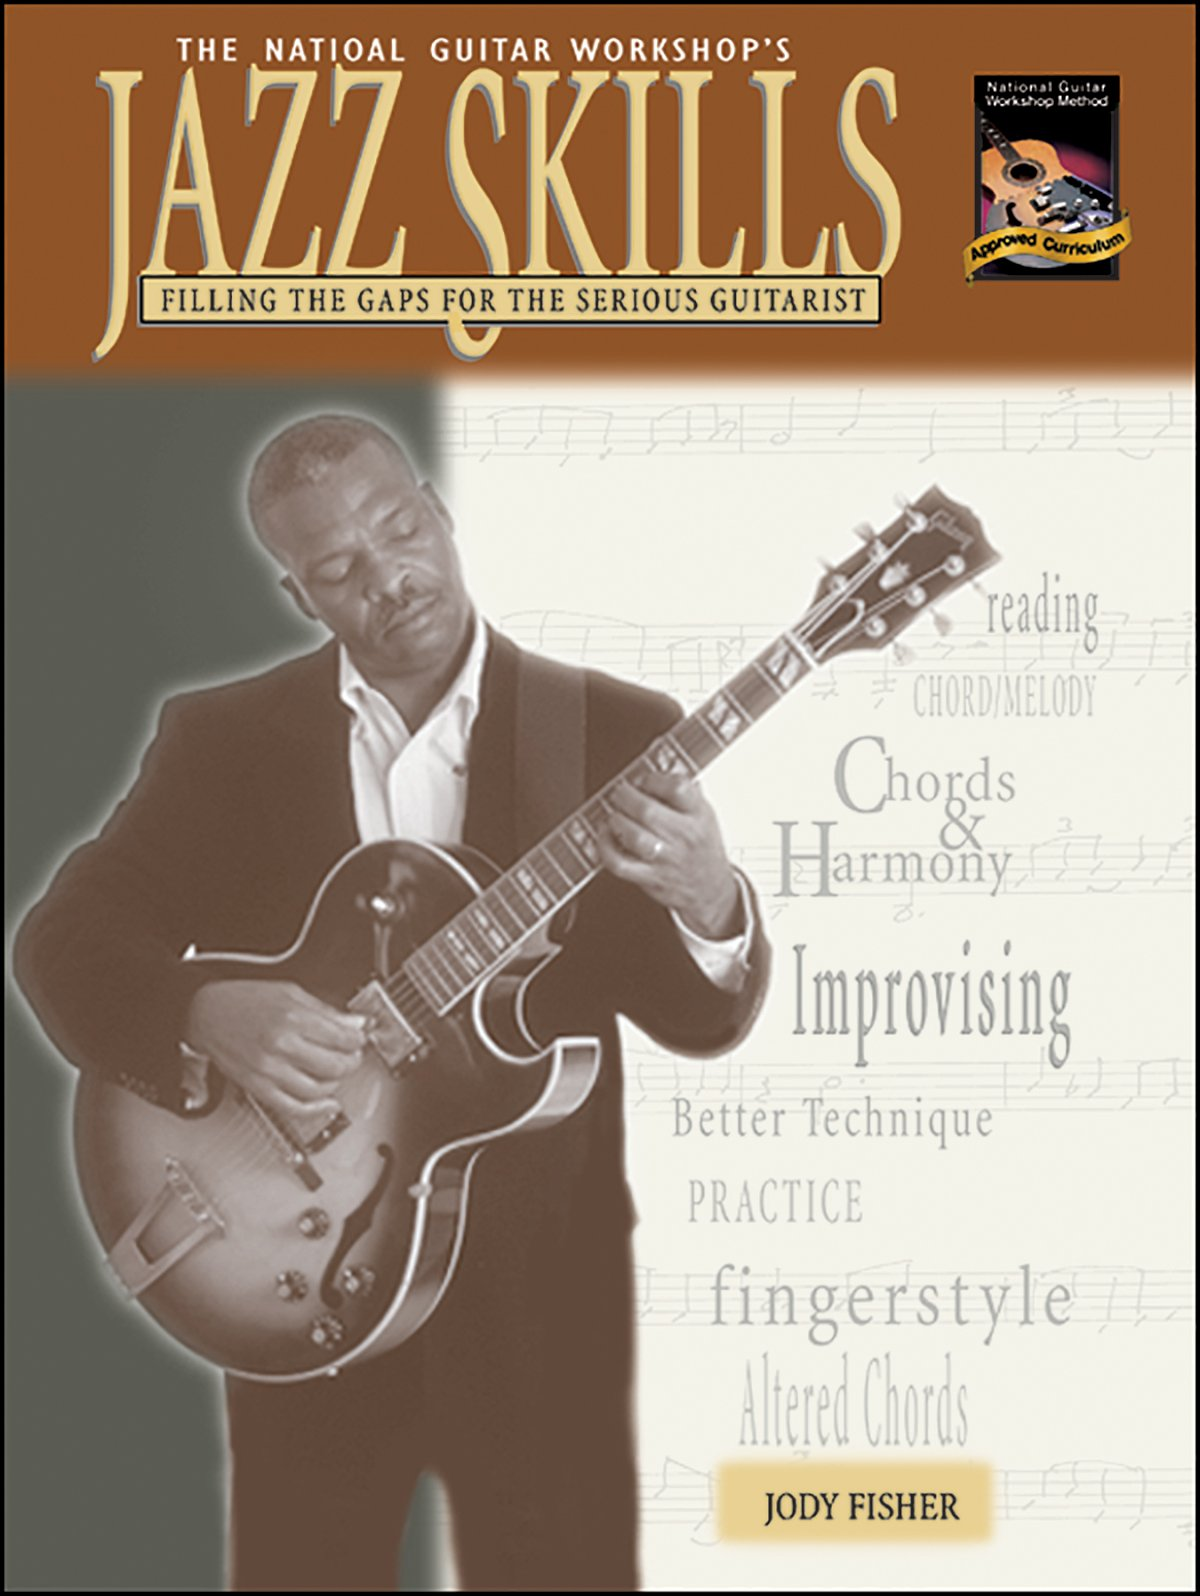 Jazz Skills: Filling the Gaps for the Serious Guitarist (The National Guitar Workshop's) PDF